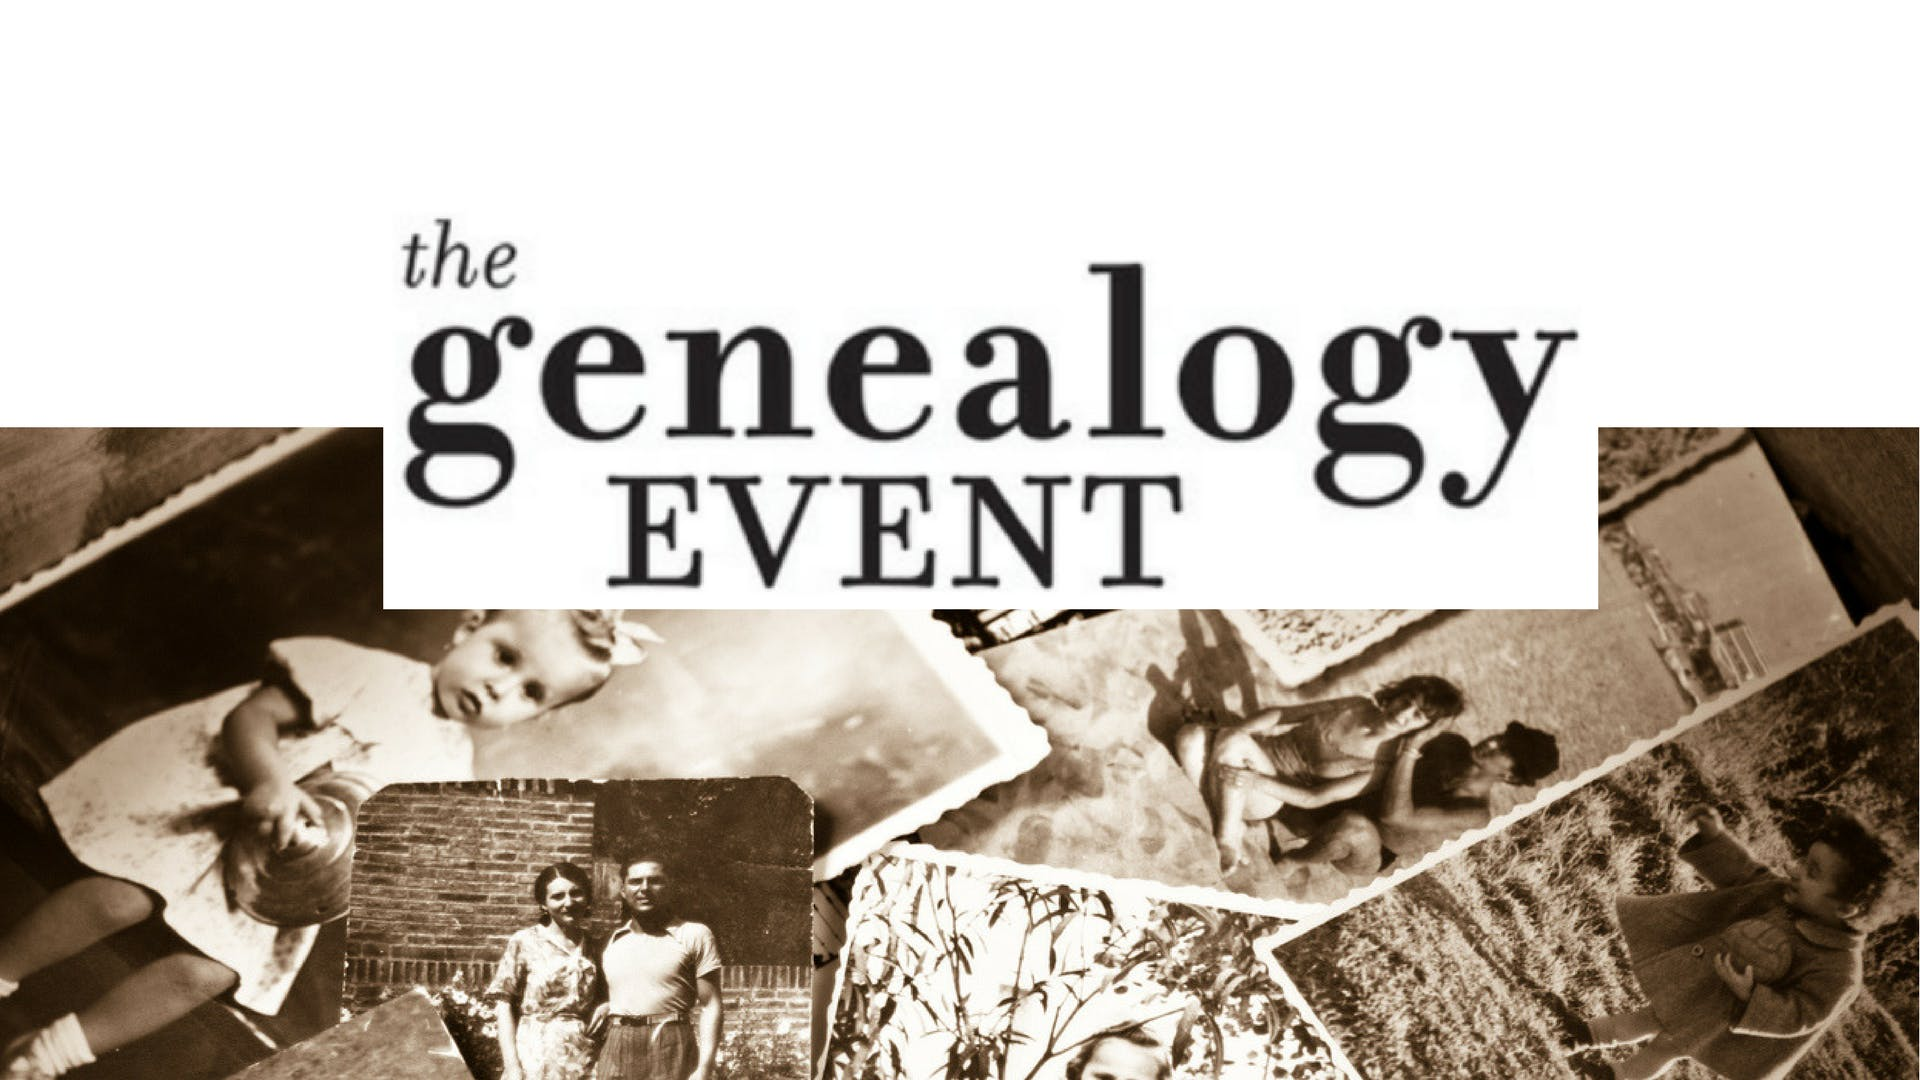 THE GENEALOGY EVENT (IRELAND)